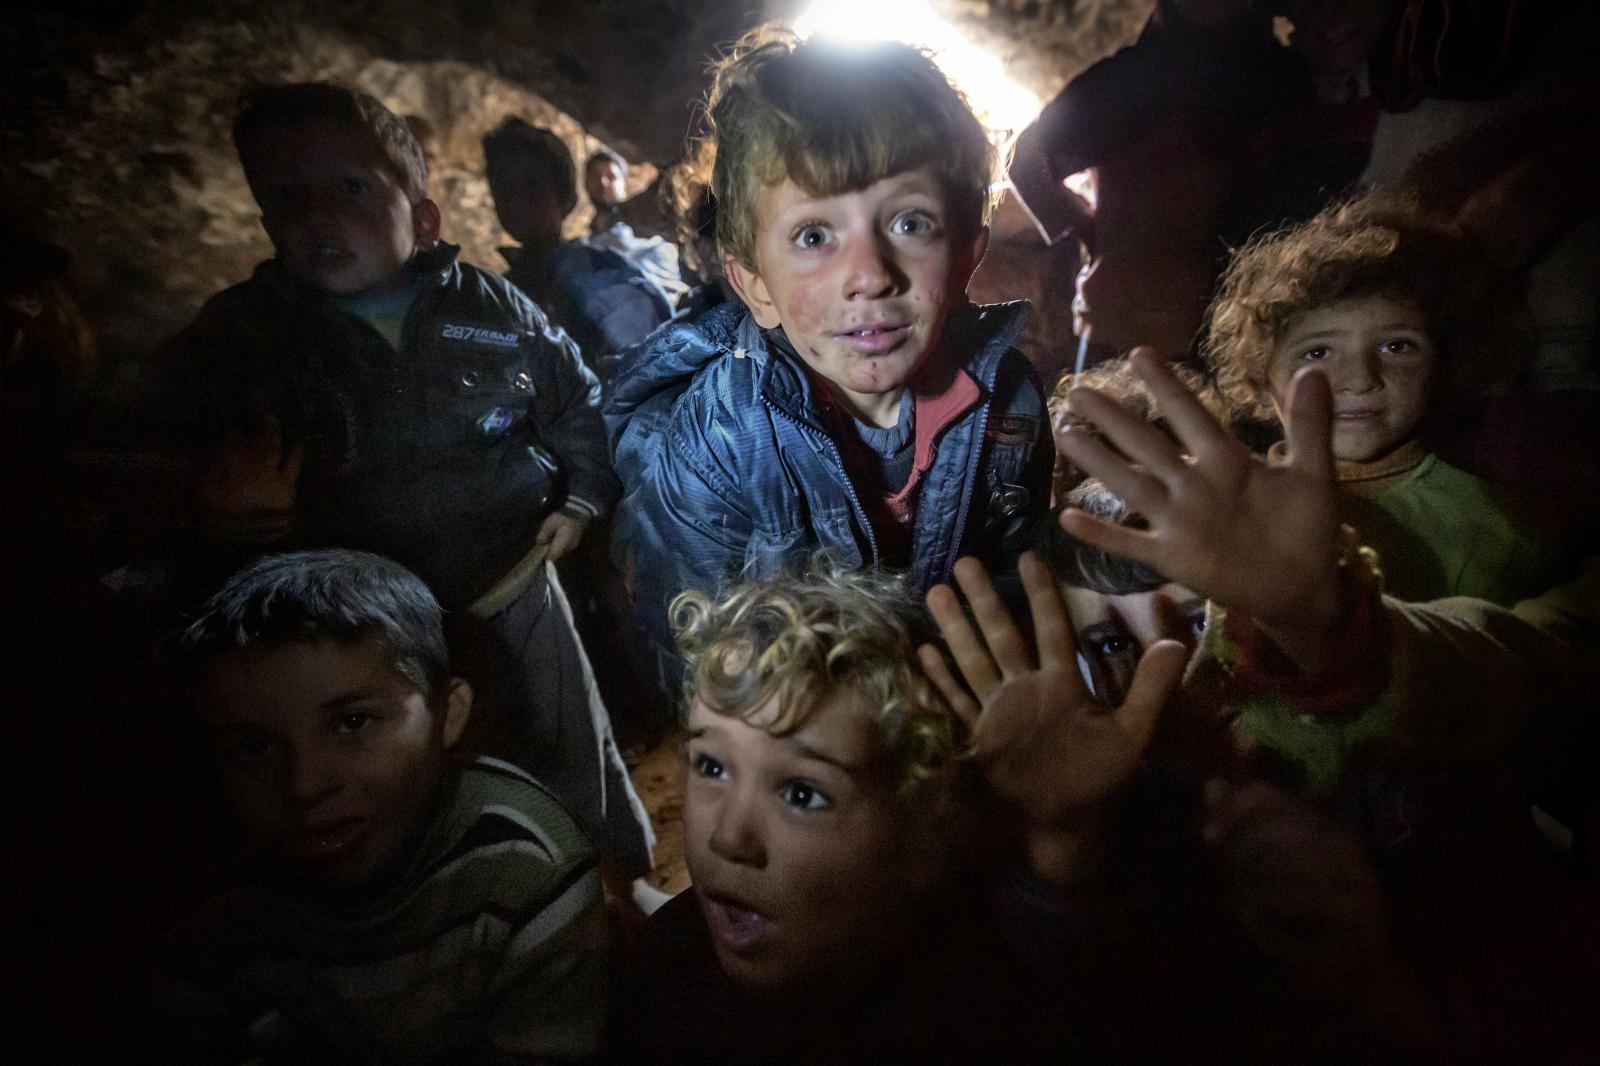 Of the nearly 400 people who had taken refuge inside the caves in Idlib province, more than half were children. The people asked that their location not be revealed because they were afraid the army might bomb them. In fact, the front lines were close by and sometimes the areas around the caves were shelled. The refugees did not have enough food, medicine or adequate winter clothing, but at least the children could attend classes taught by volunteers (Syria, 2013)